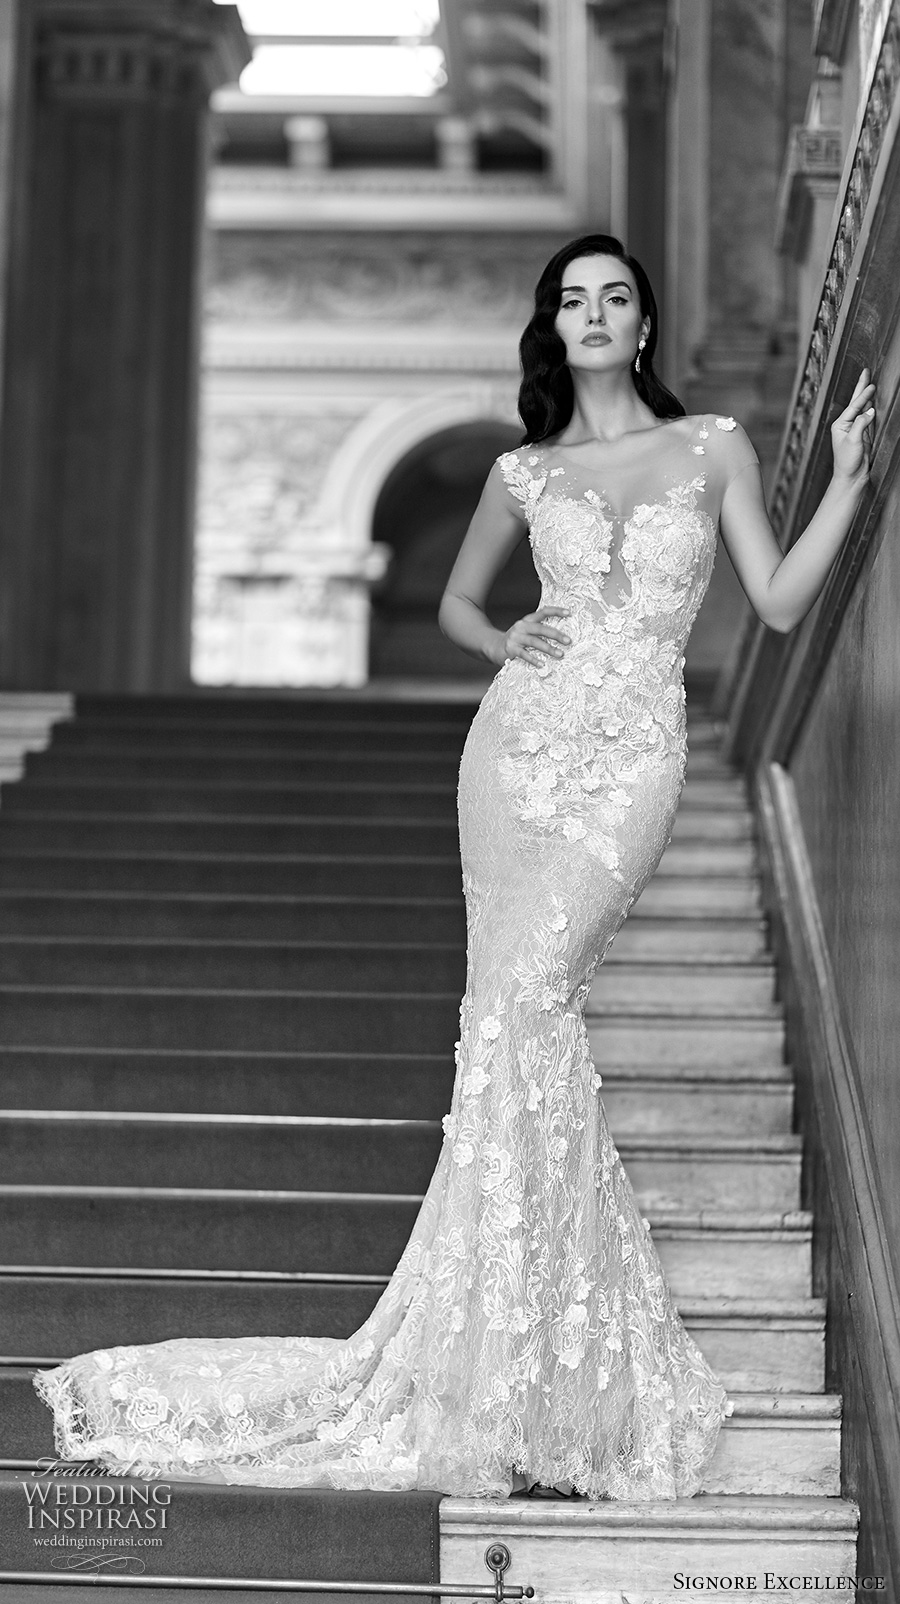 Maison Signore 2017 Wedding Dresses  Wedding Inspirasi. Vera Wang Wedding Dresses Spring 2013. Most Famous Wedding Dresses Of All Time. Vintage Style Wedding Dresses Birmingham. Vintage Wedding Dresses Harrogate. Blue Elegant Wedding Dresses. Backless Lace Wedding Dresses David Bridal. Wedding Dress Lace Detail Back. Disney Wedding Dresses Wholesale